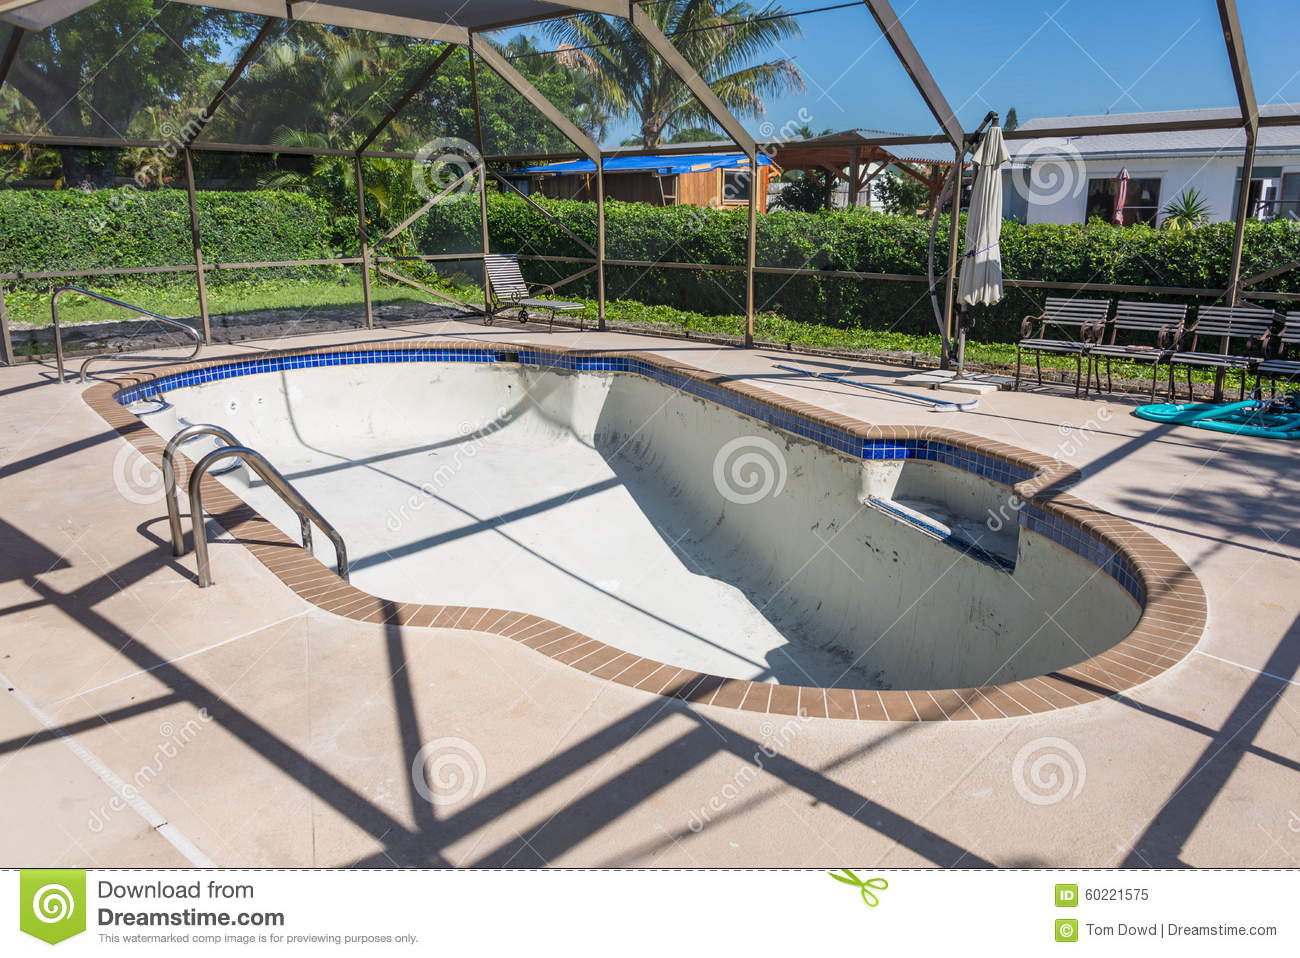 New Pool Tile Border Grout Work Remodel Stock Image - Image ...